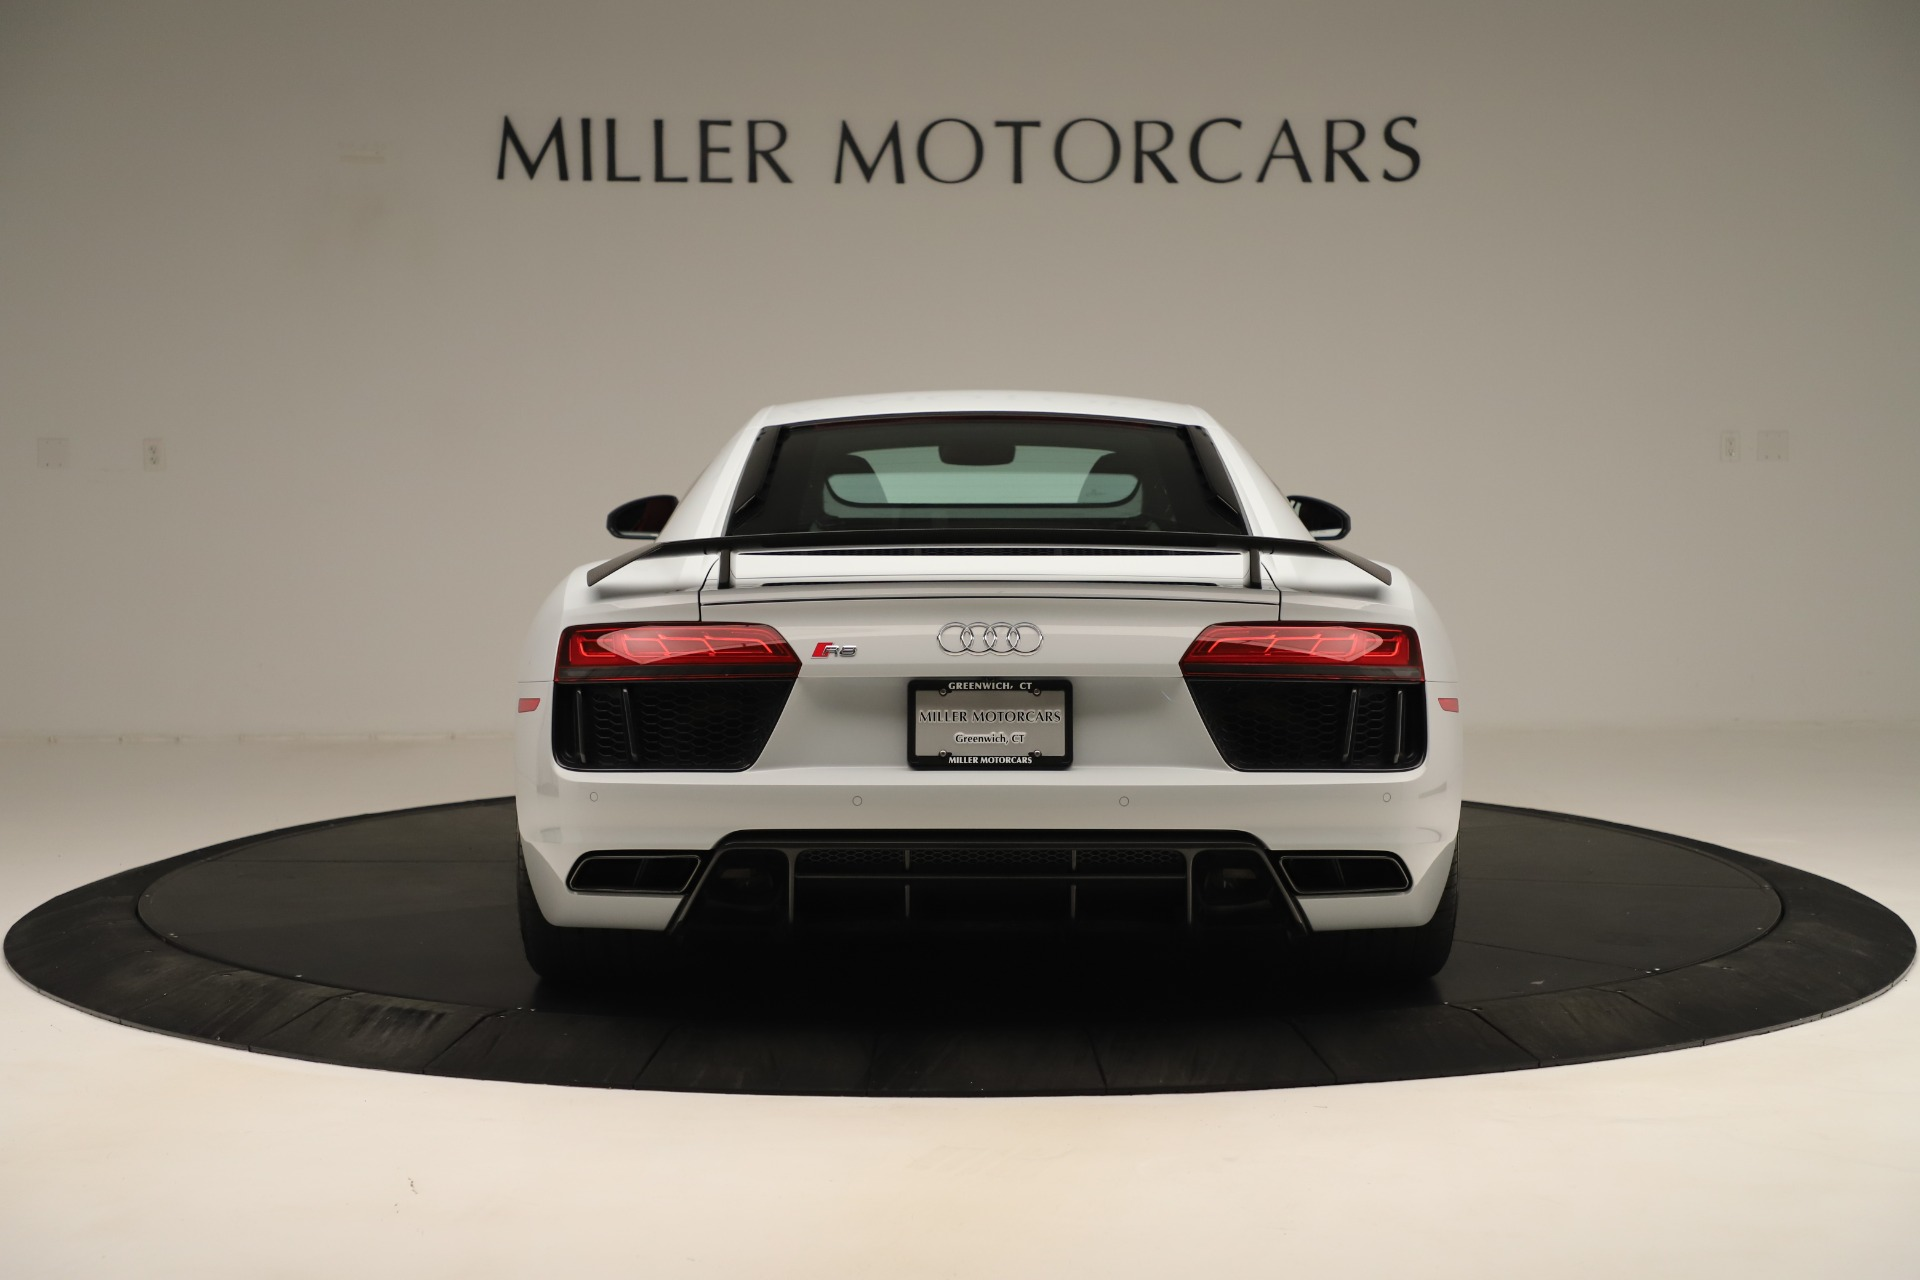 Used 2018 Audi R8 5.2 quattro V10 Plus For Sale In Westport, CT 3360_p6